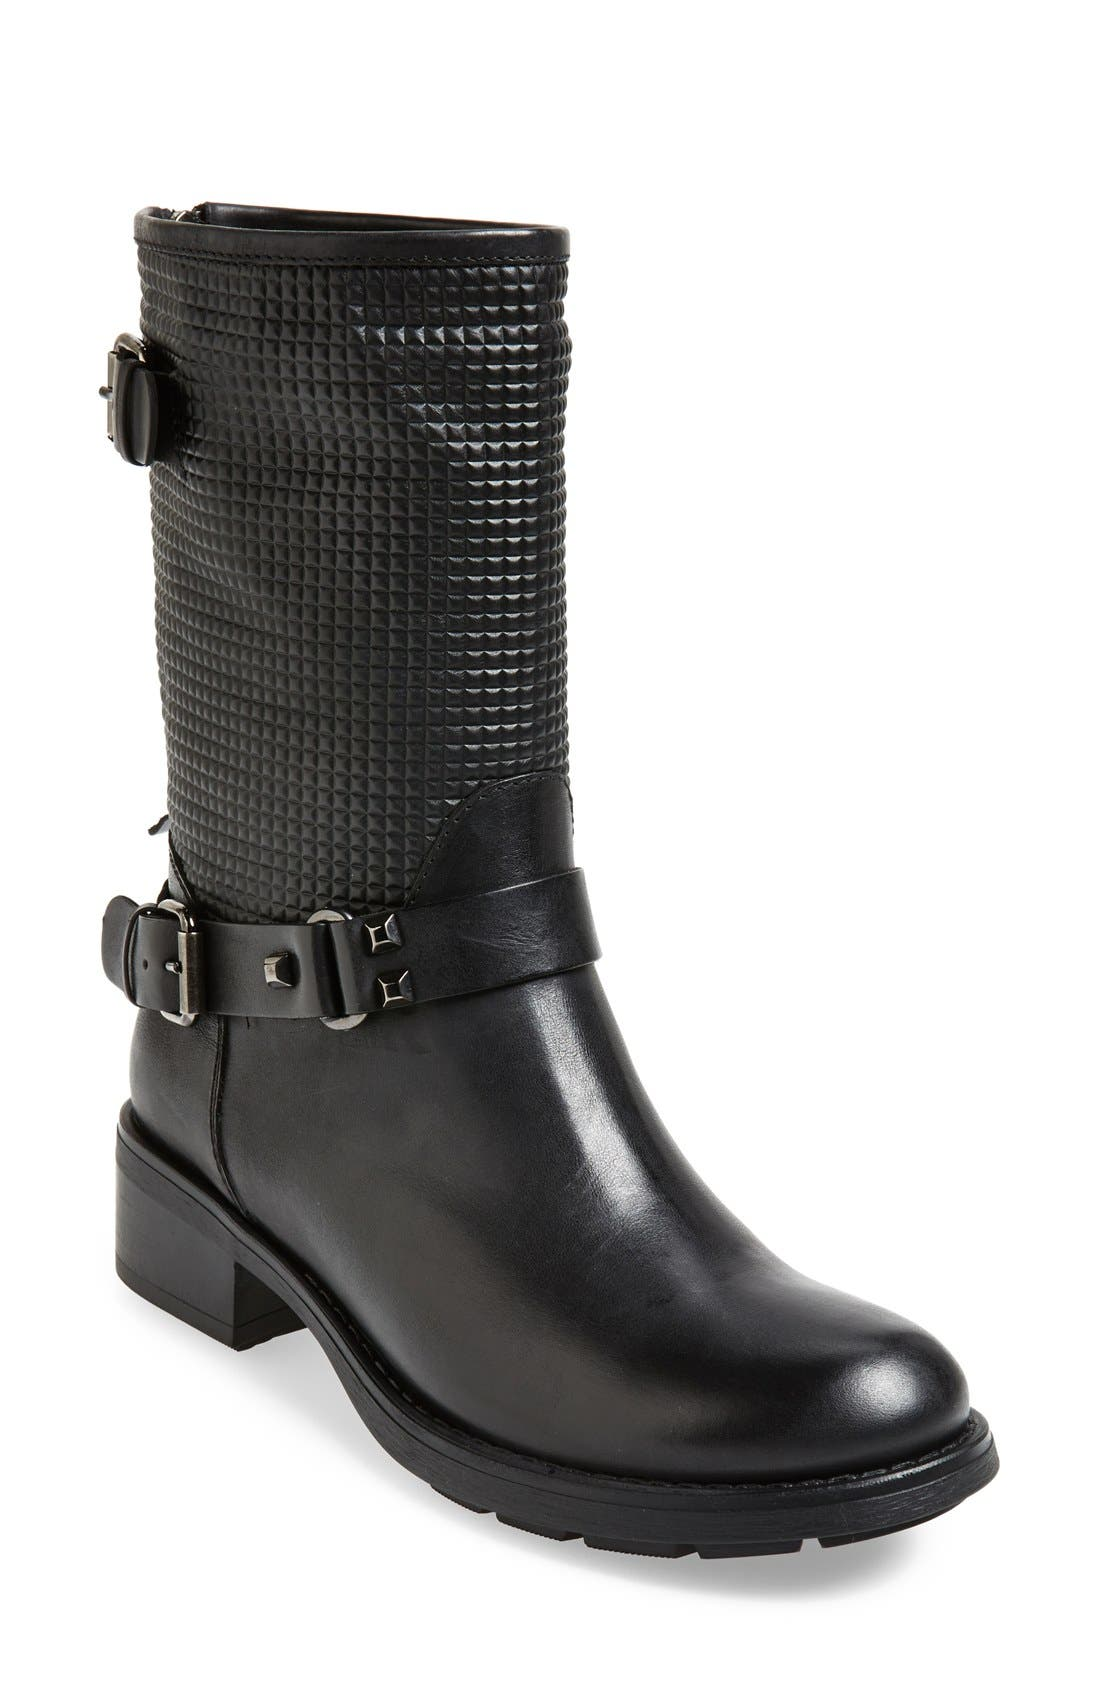 Alternate Image 1 Selected - Aquatalia by Marvin K. 'Scout' Weatherproof Moto Boot (Women)